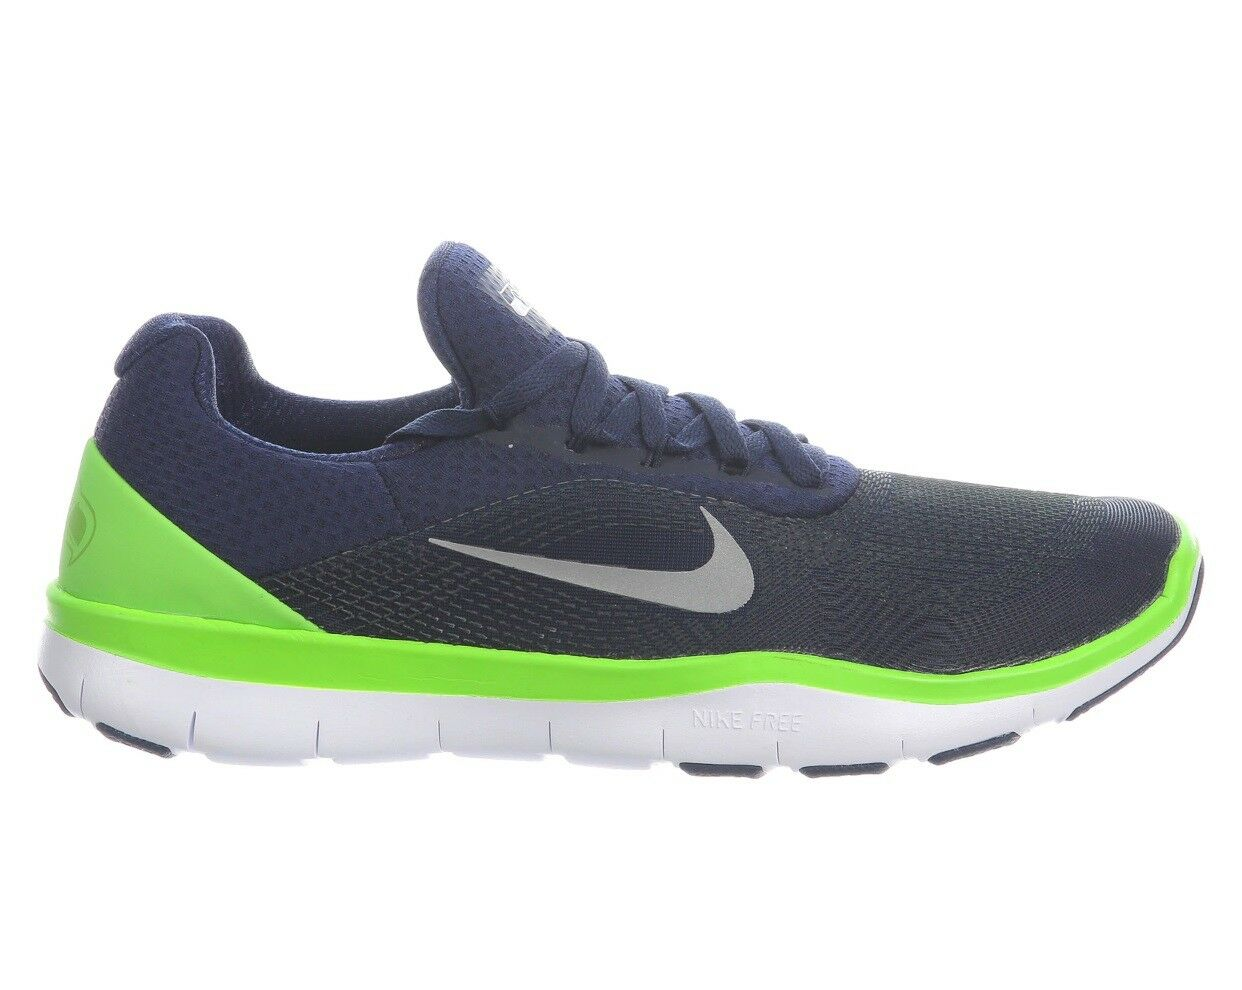 Nike Free Trainer V7 Seahawks Mens AA1948-400 Navy Green Training Shoes Size 10